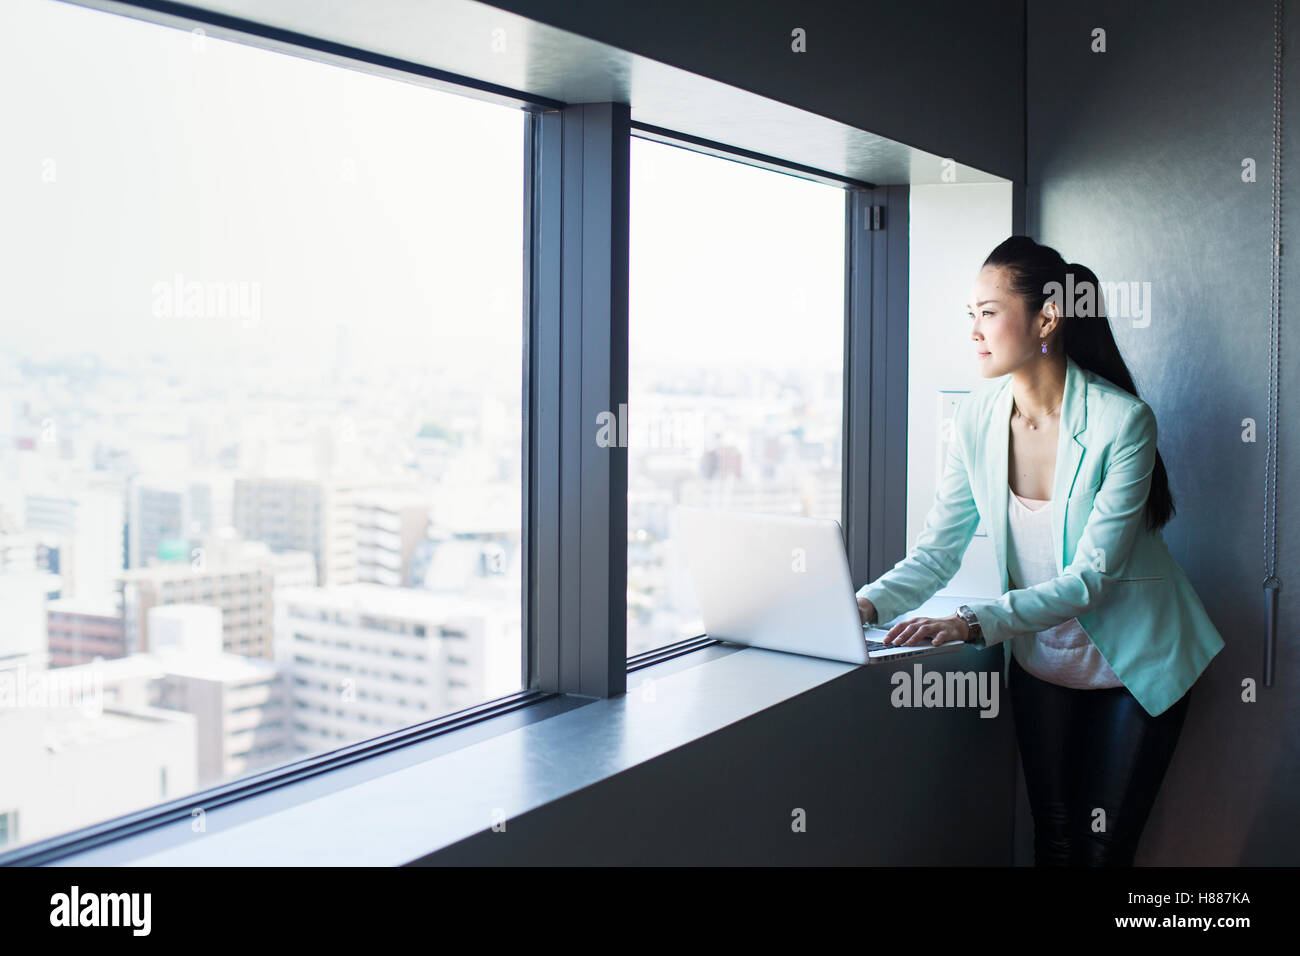 A business woman by a window with a view over the city, looking out. Laptop. Stock Photo